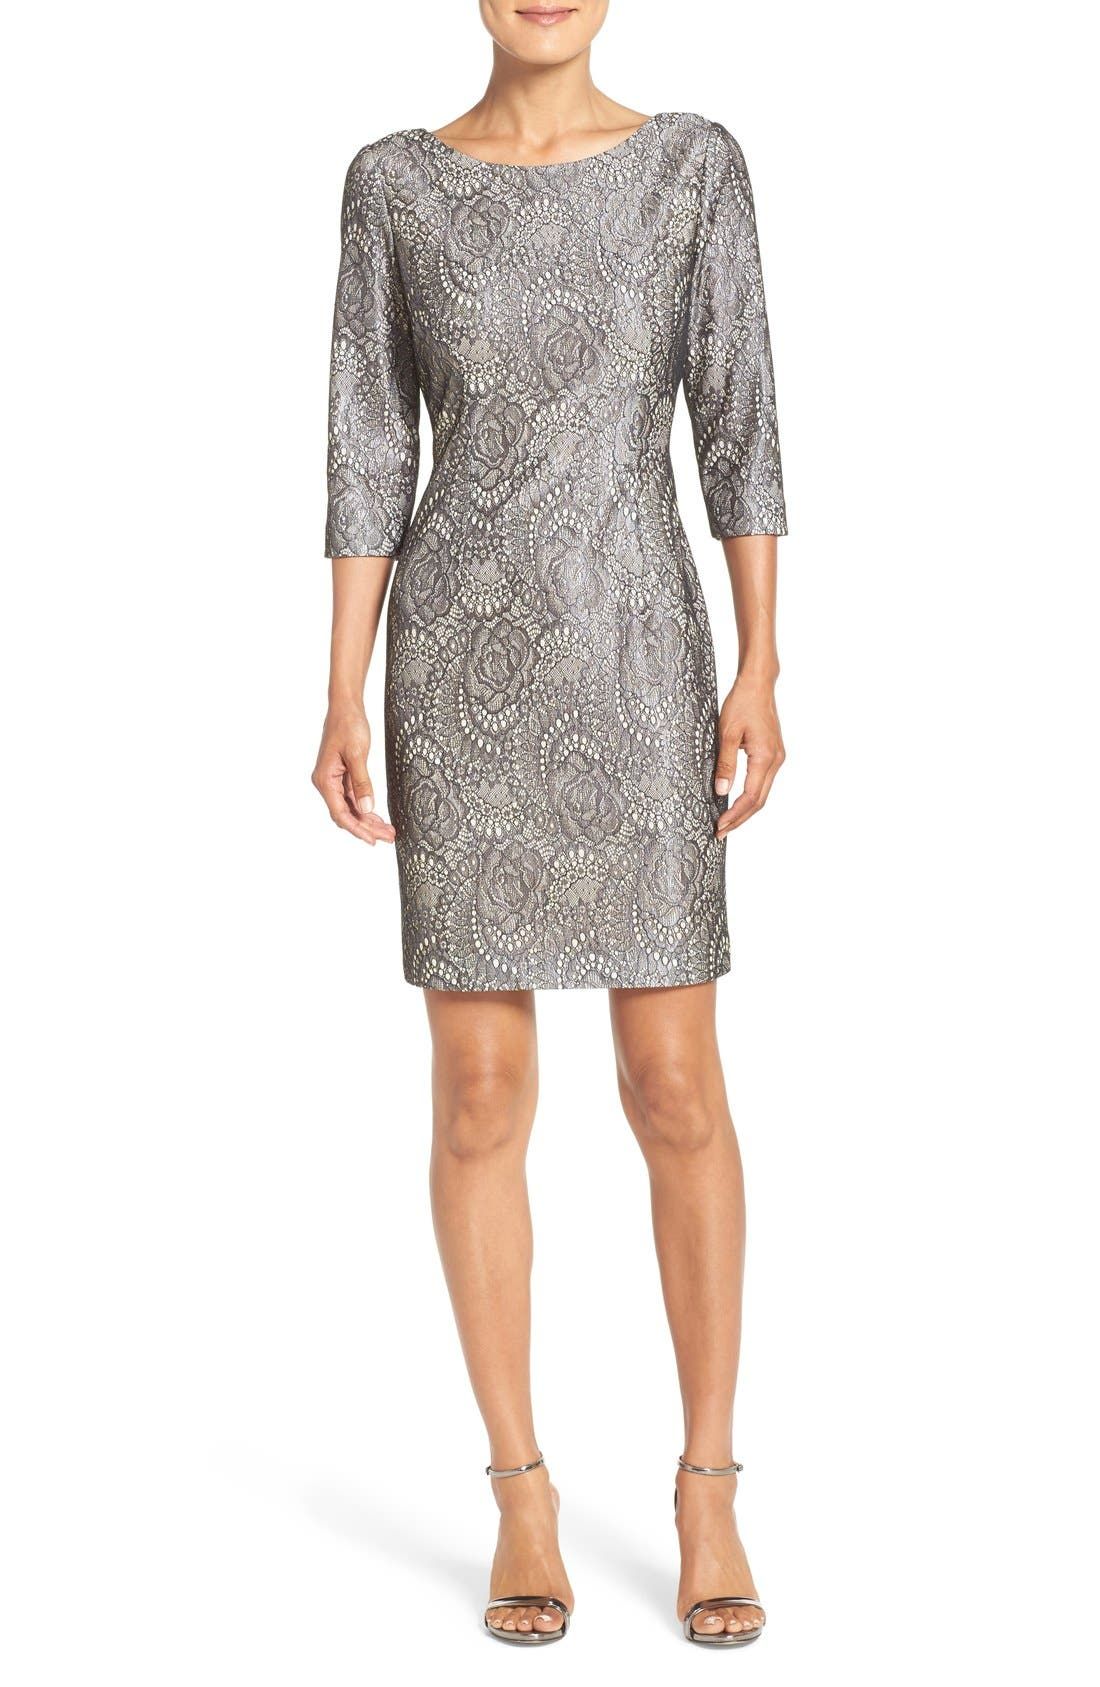 Alternate Image 1 Selected - Eliza J Bonded Lace Sheath Dress